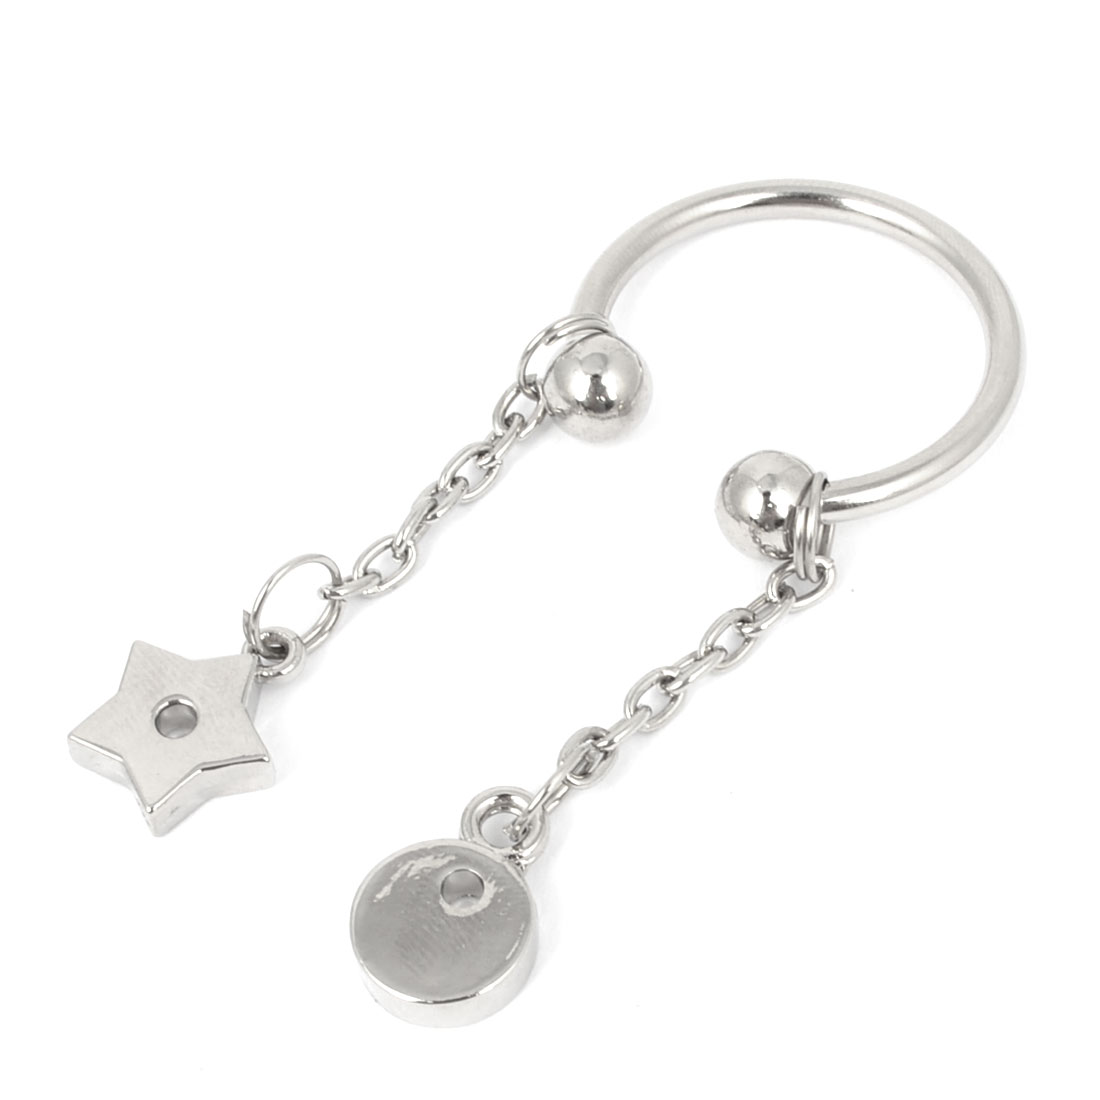 Portable Five Pointed Star Moon Shape Adjustable Split Ring Screwball Keychain